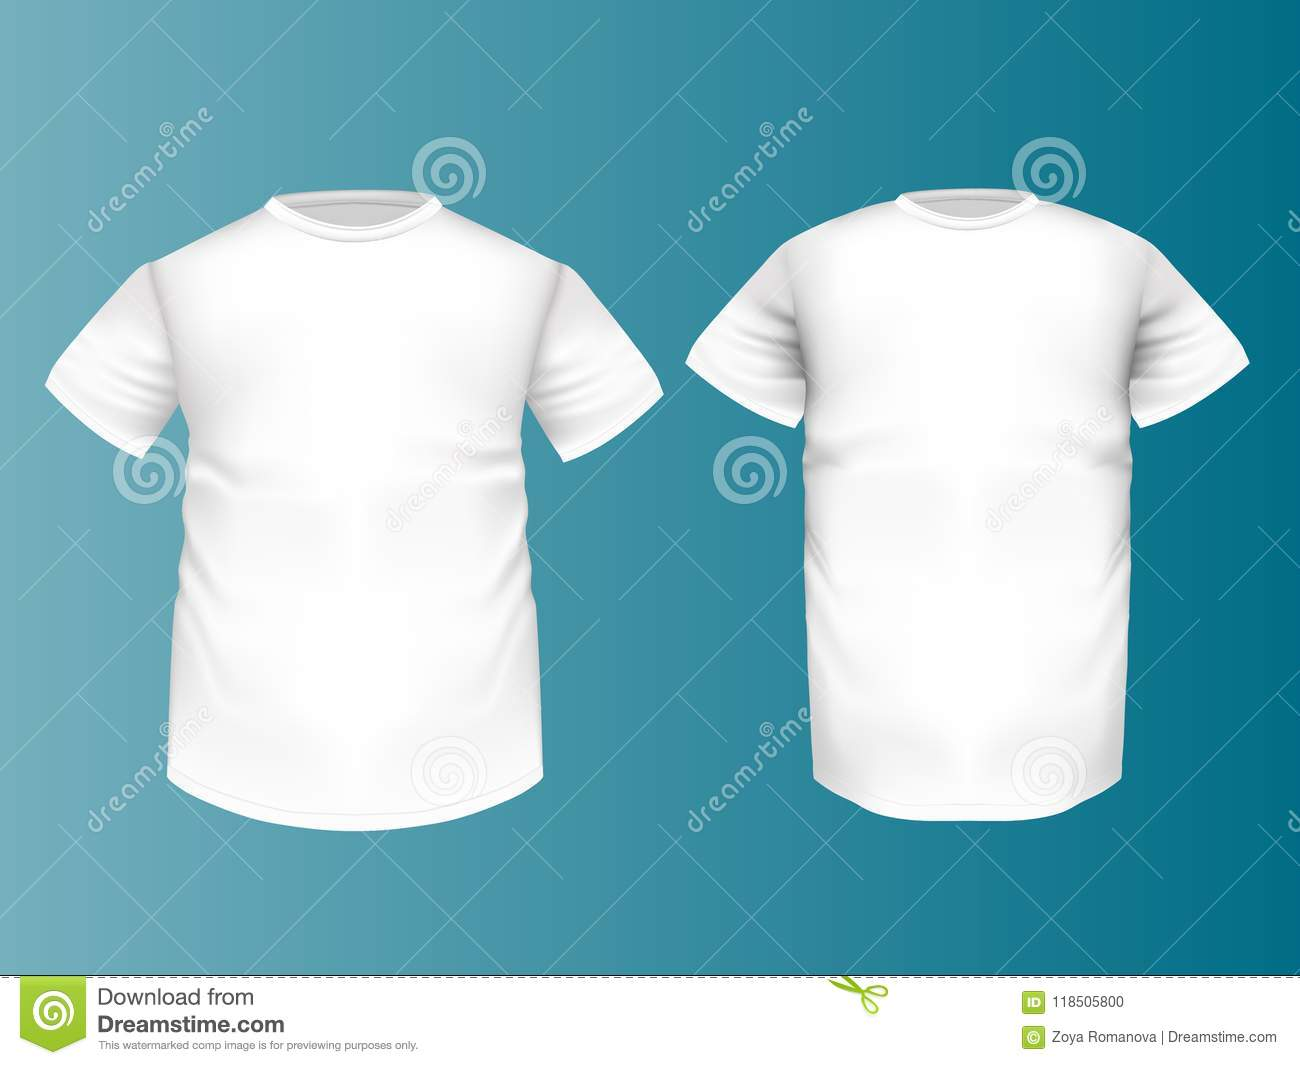 Big Xxl Mock Up T Shirt Realistic Big Size Xxl White Color Mocku Stock